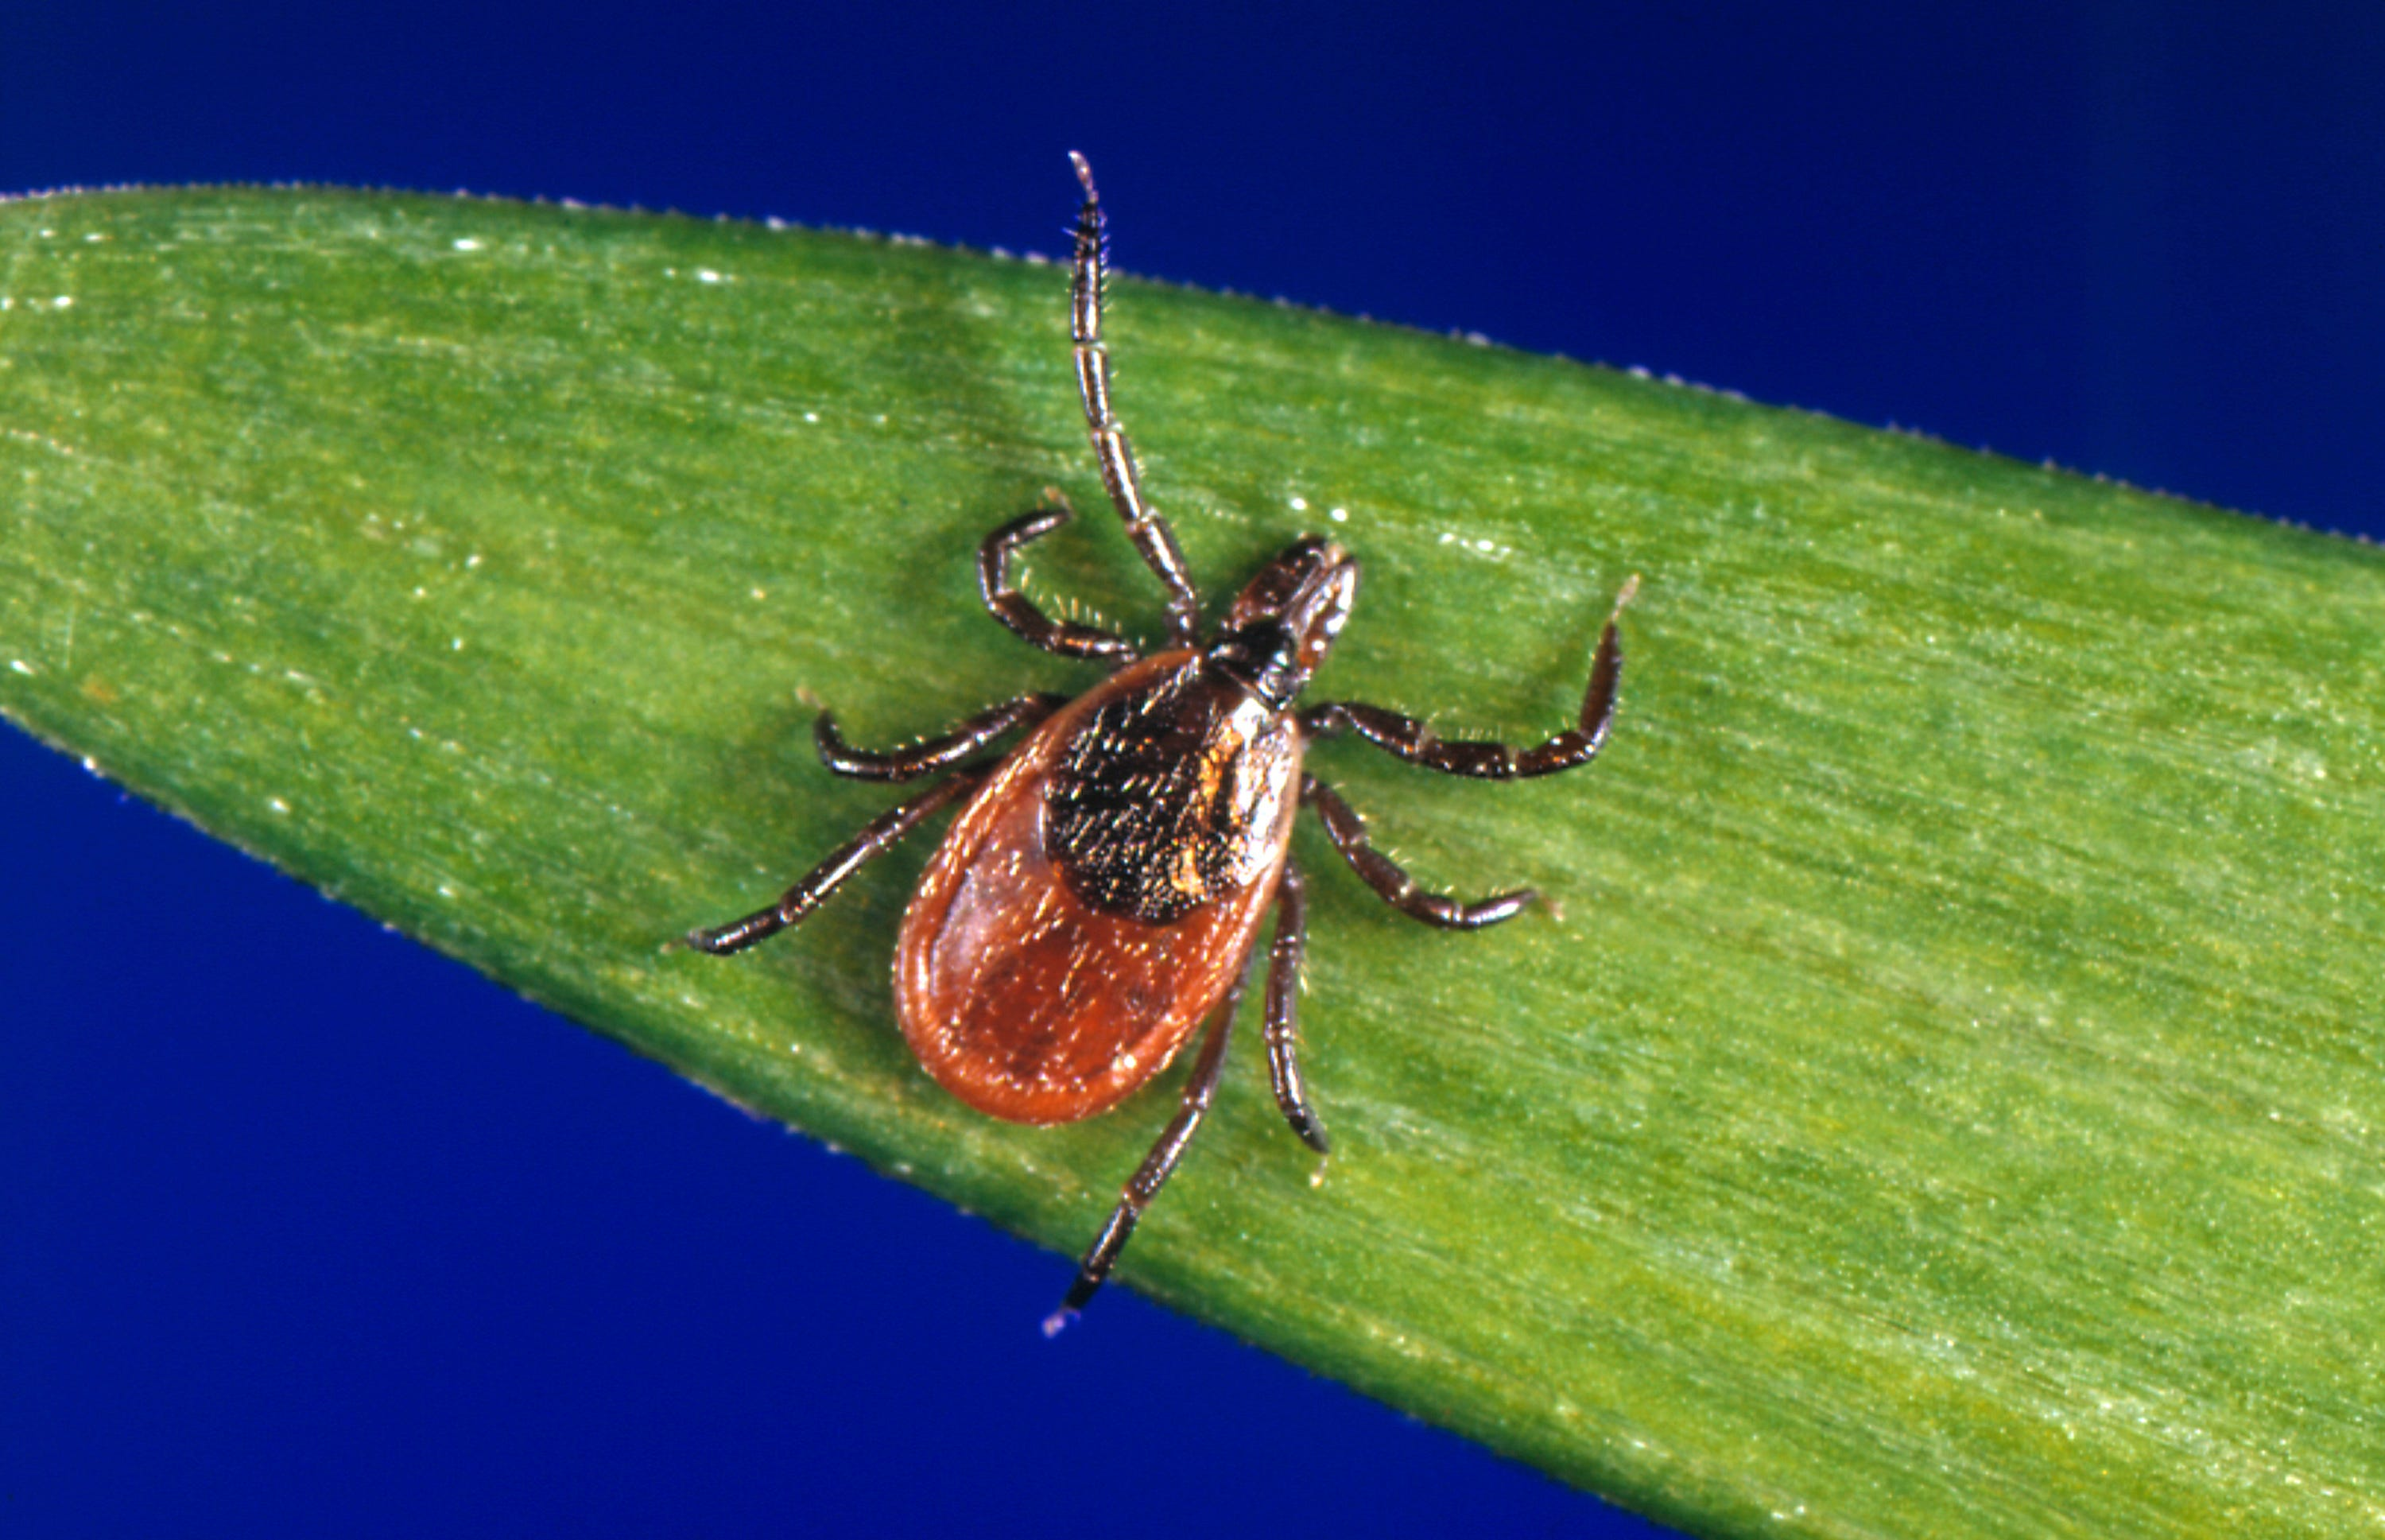 The black-legged tick, also known as a deer tick, can carry Lyme disease.